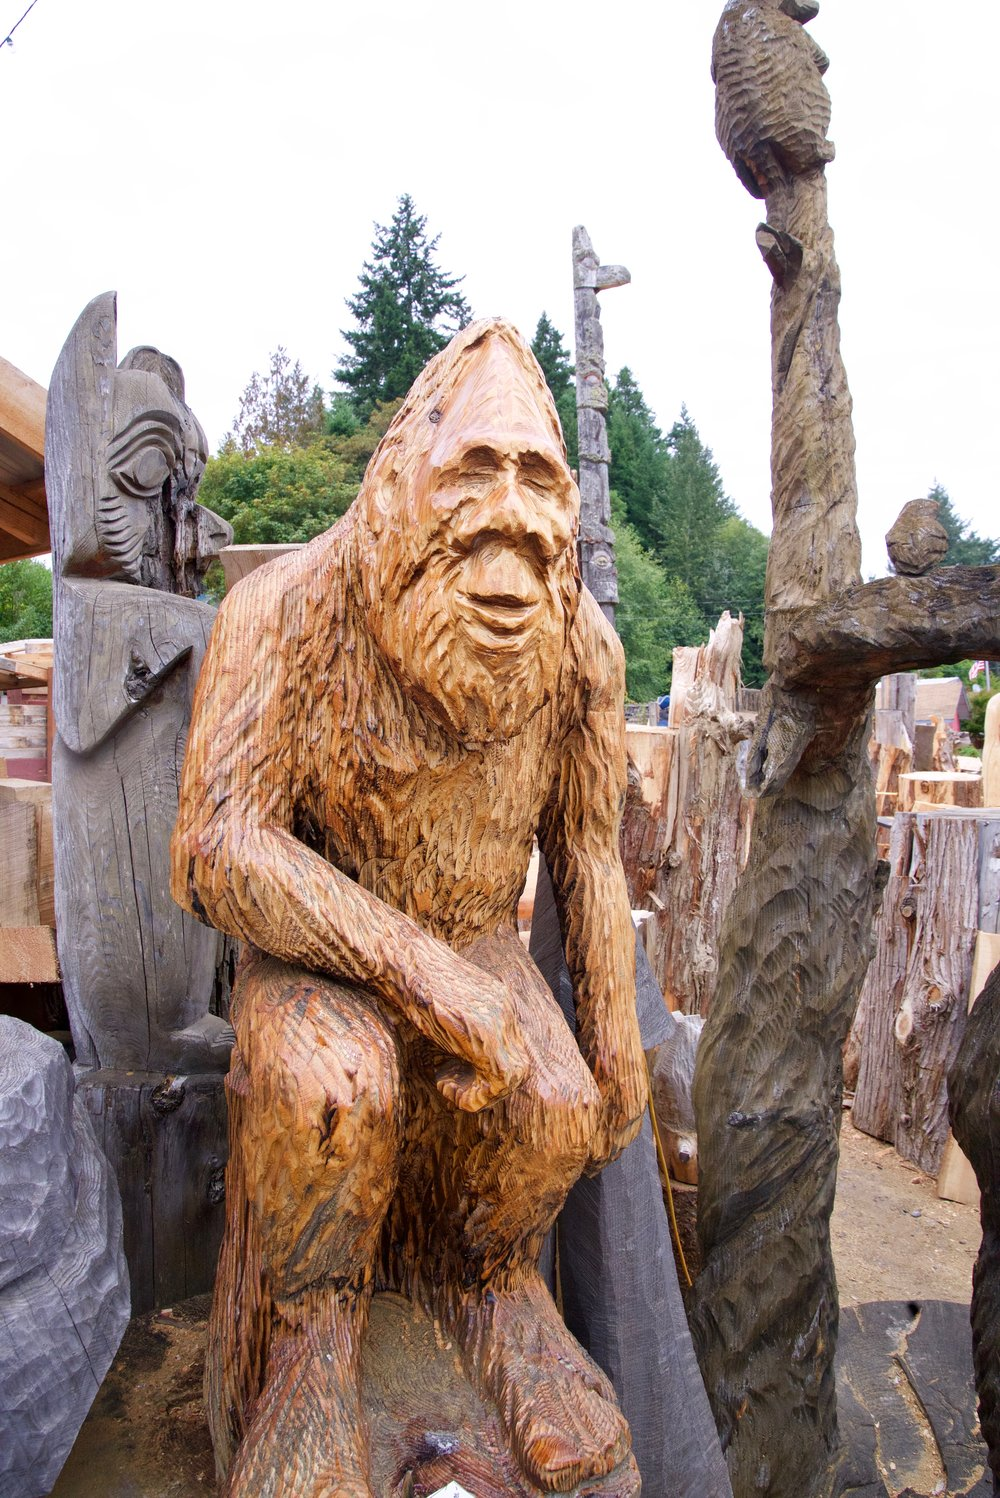 Stop by    Bear in a Box    in Allyn WA for some amazing squatch art.